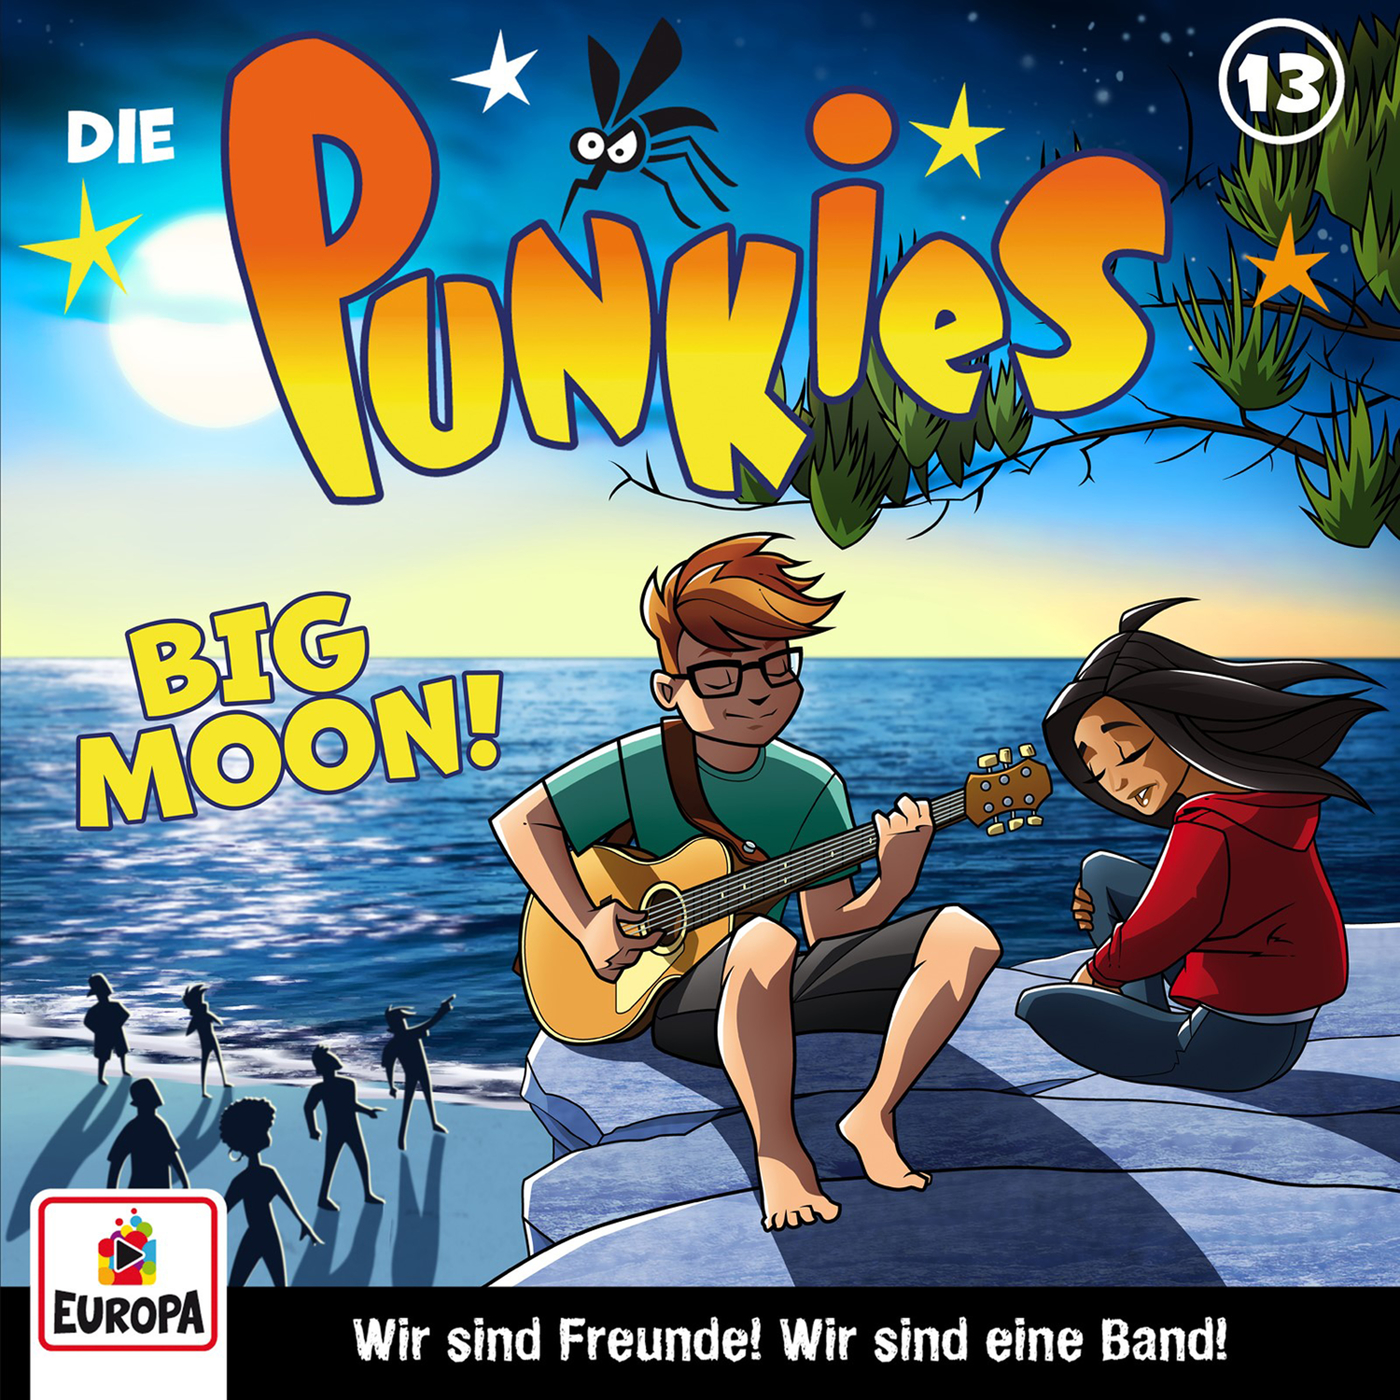 013/Big Moon - Die Punkies